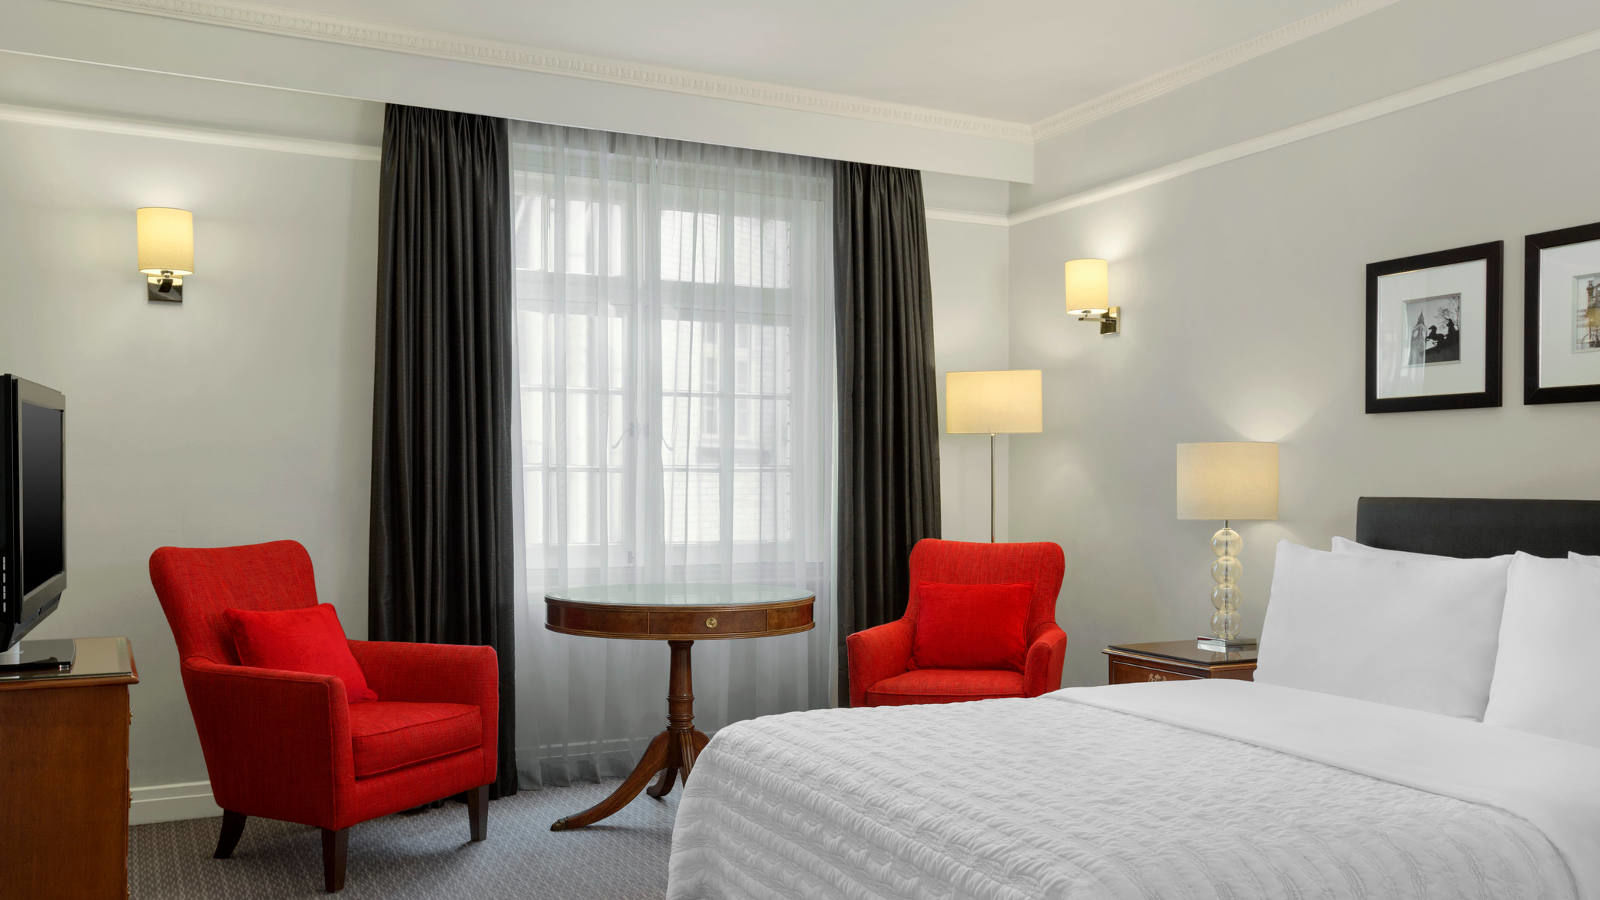 Hotel Bedroom Sizes Uk West End Hotel Club Rooms Le Méridien Piccadilly